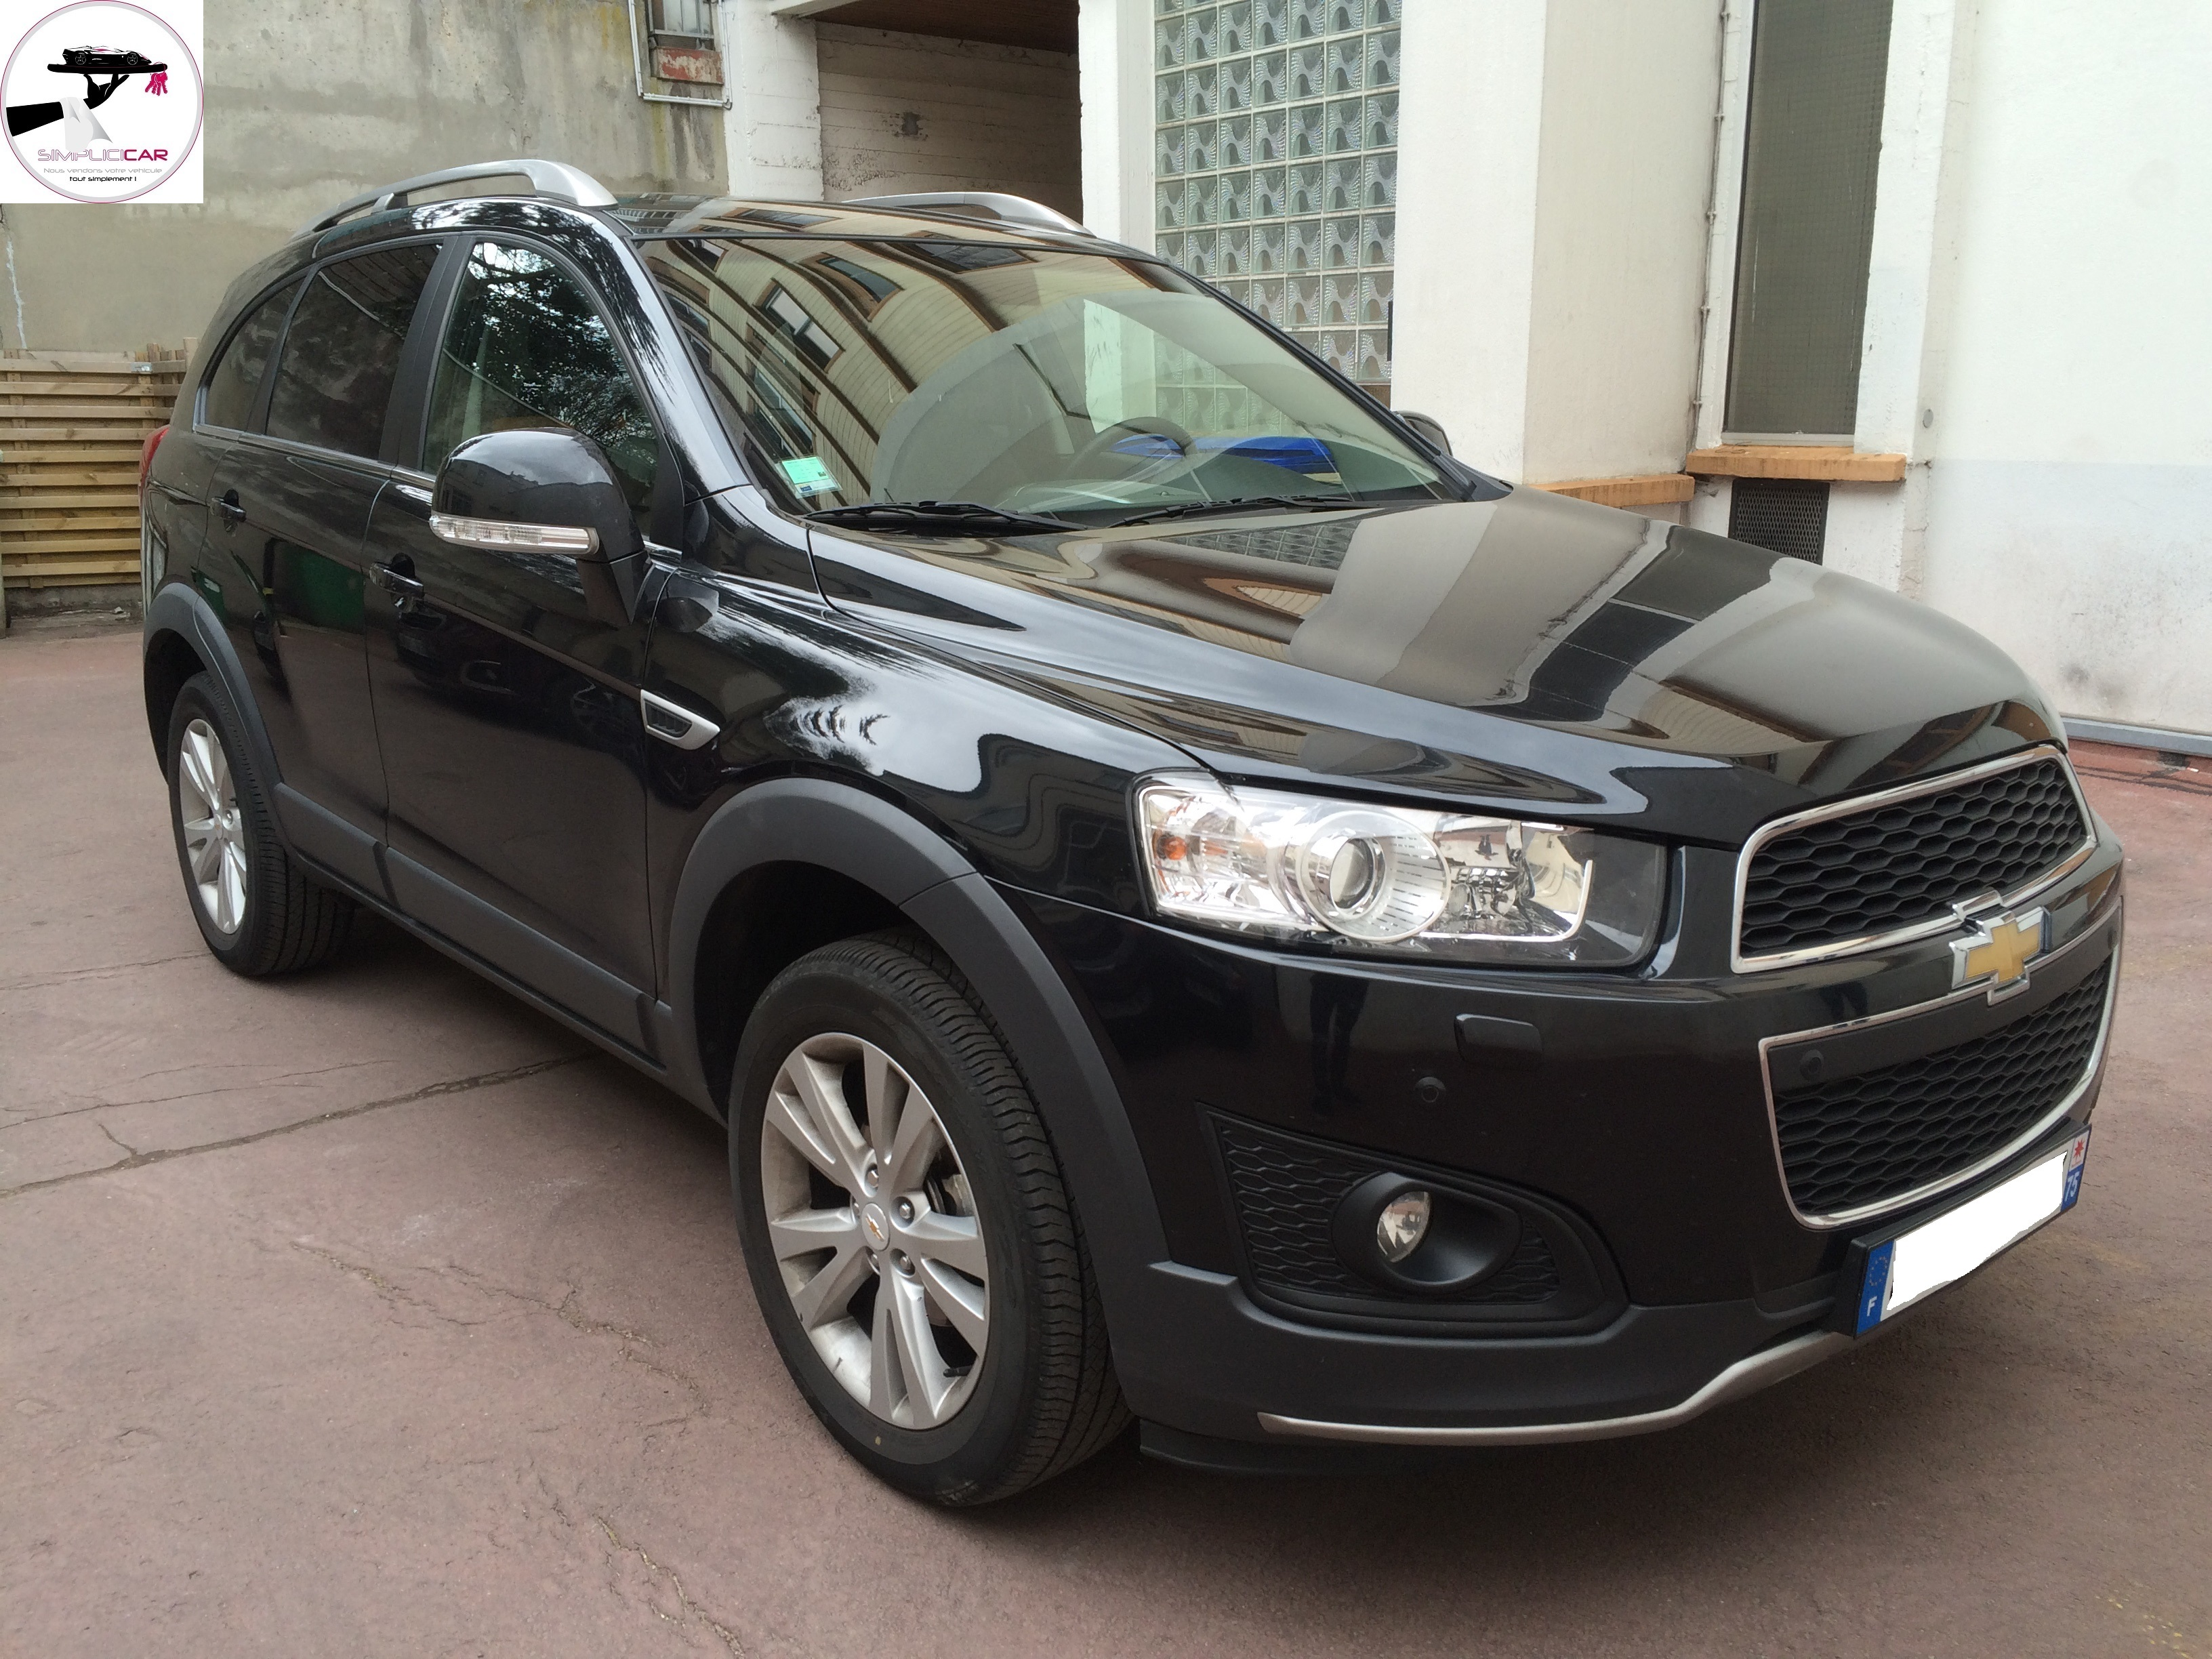 voiture chevrolet captiva 2 2 vcdi 163 s s lt occasion diesel 2013 74400 km 16990. Black Bedroom Furniture Sets. Home Design Ideas